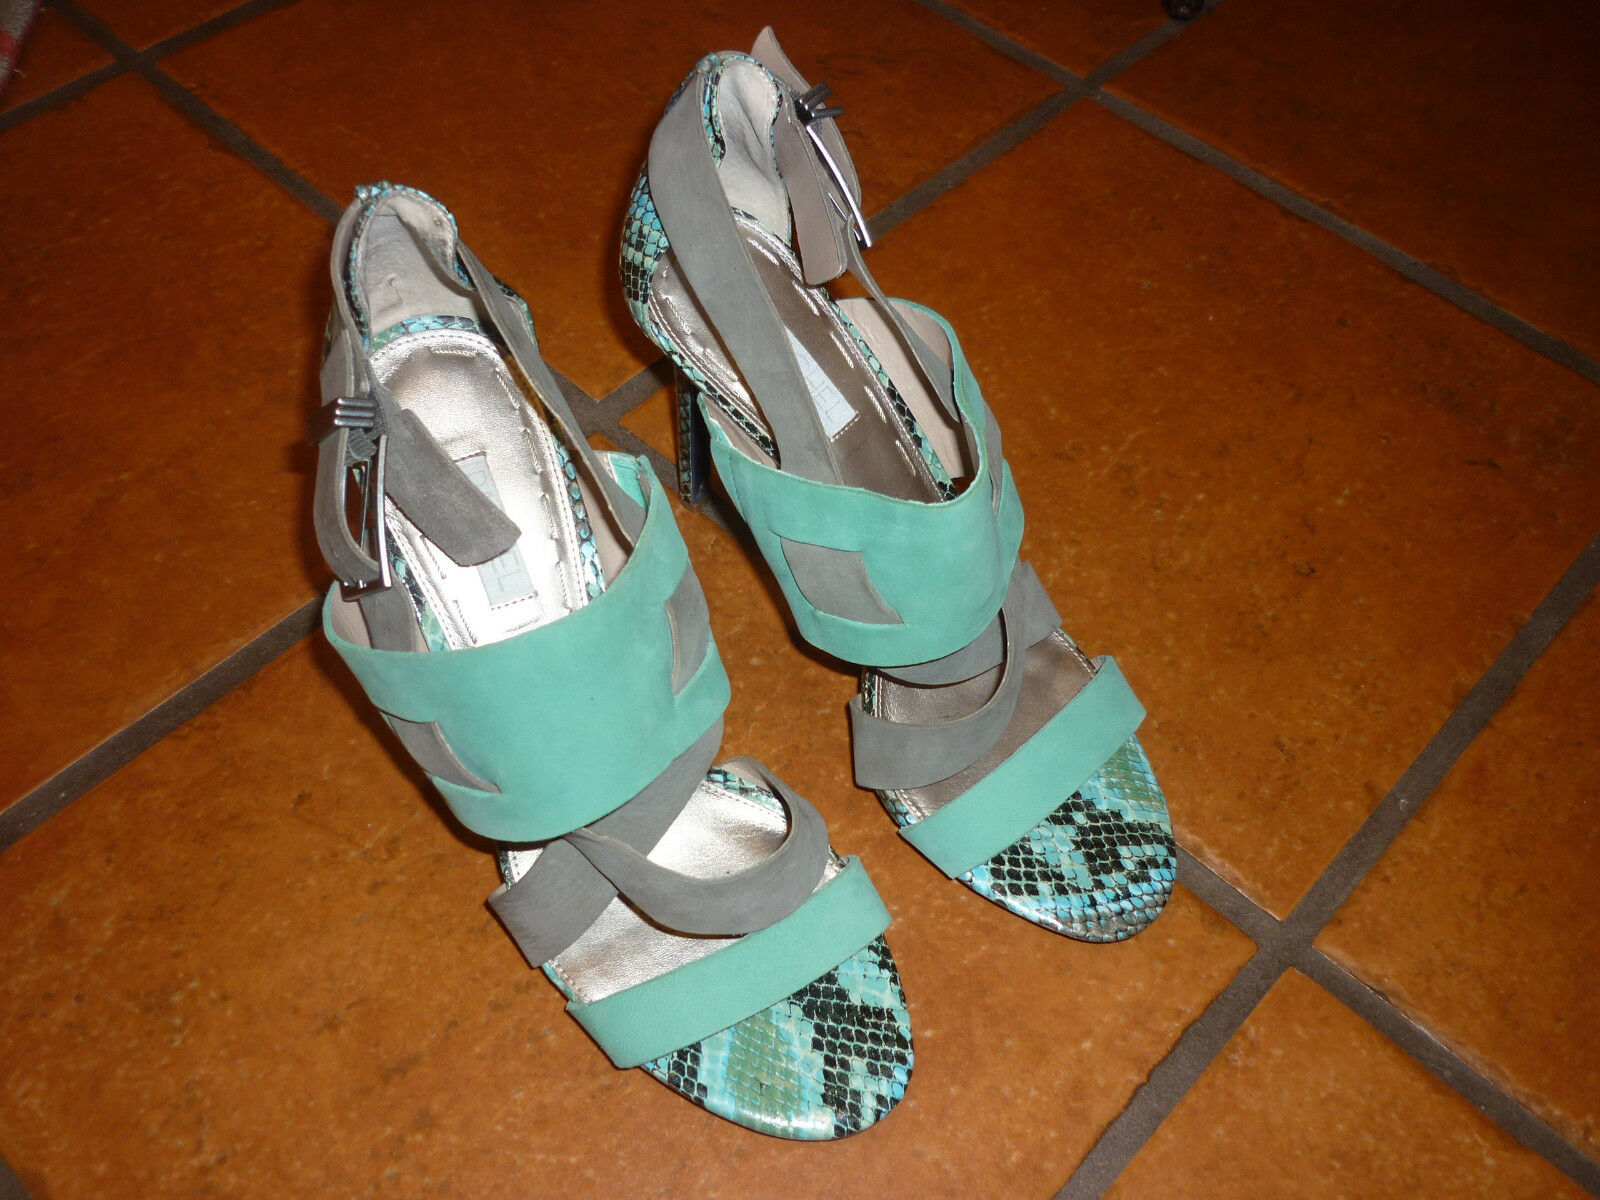 RACHEL Teal ROY SANDALS HIGH HEELS Turquoise STRAPPY Teal RACHEL Green Grey SUEDE/LEATHER 10 707c41